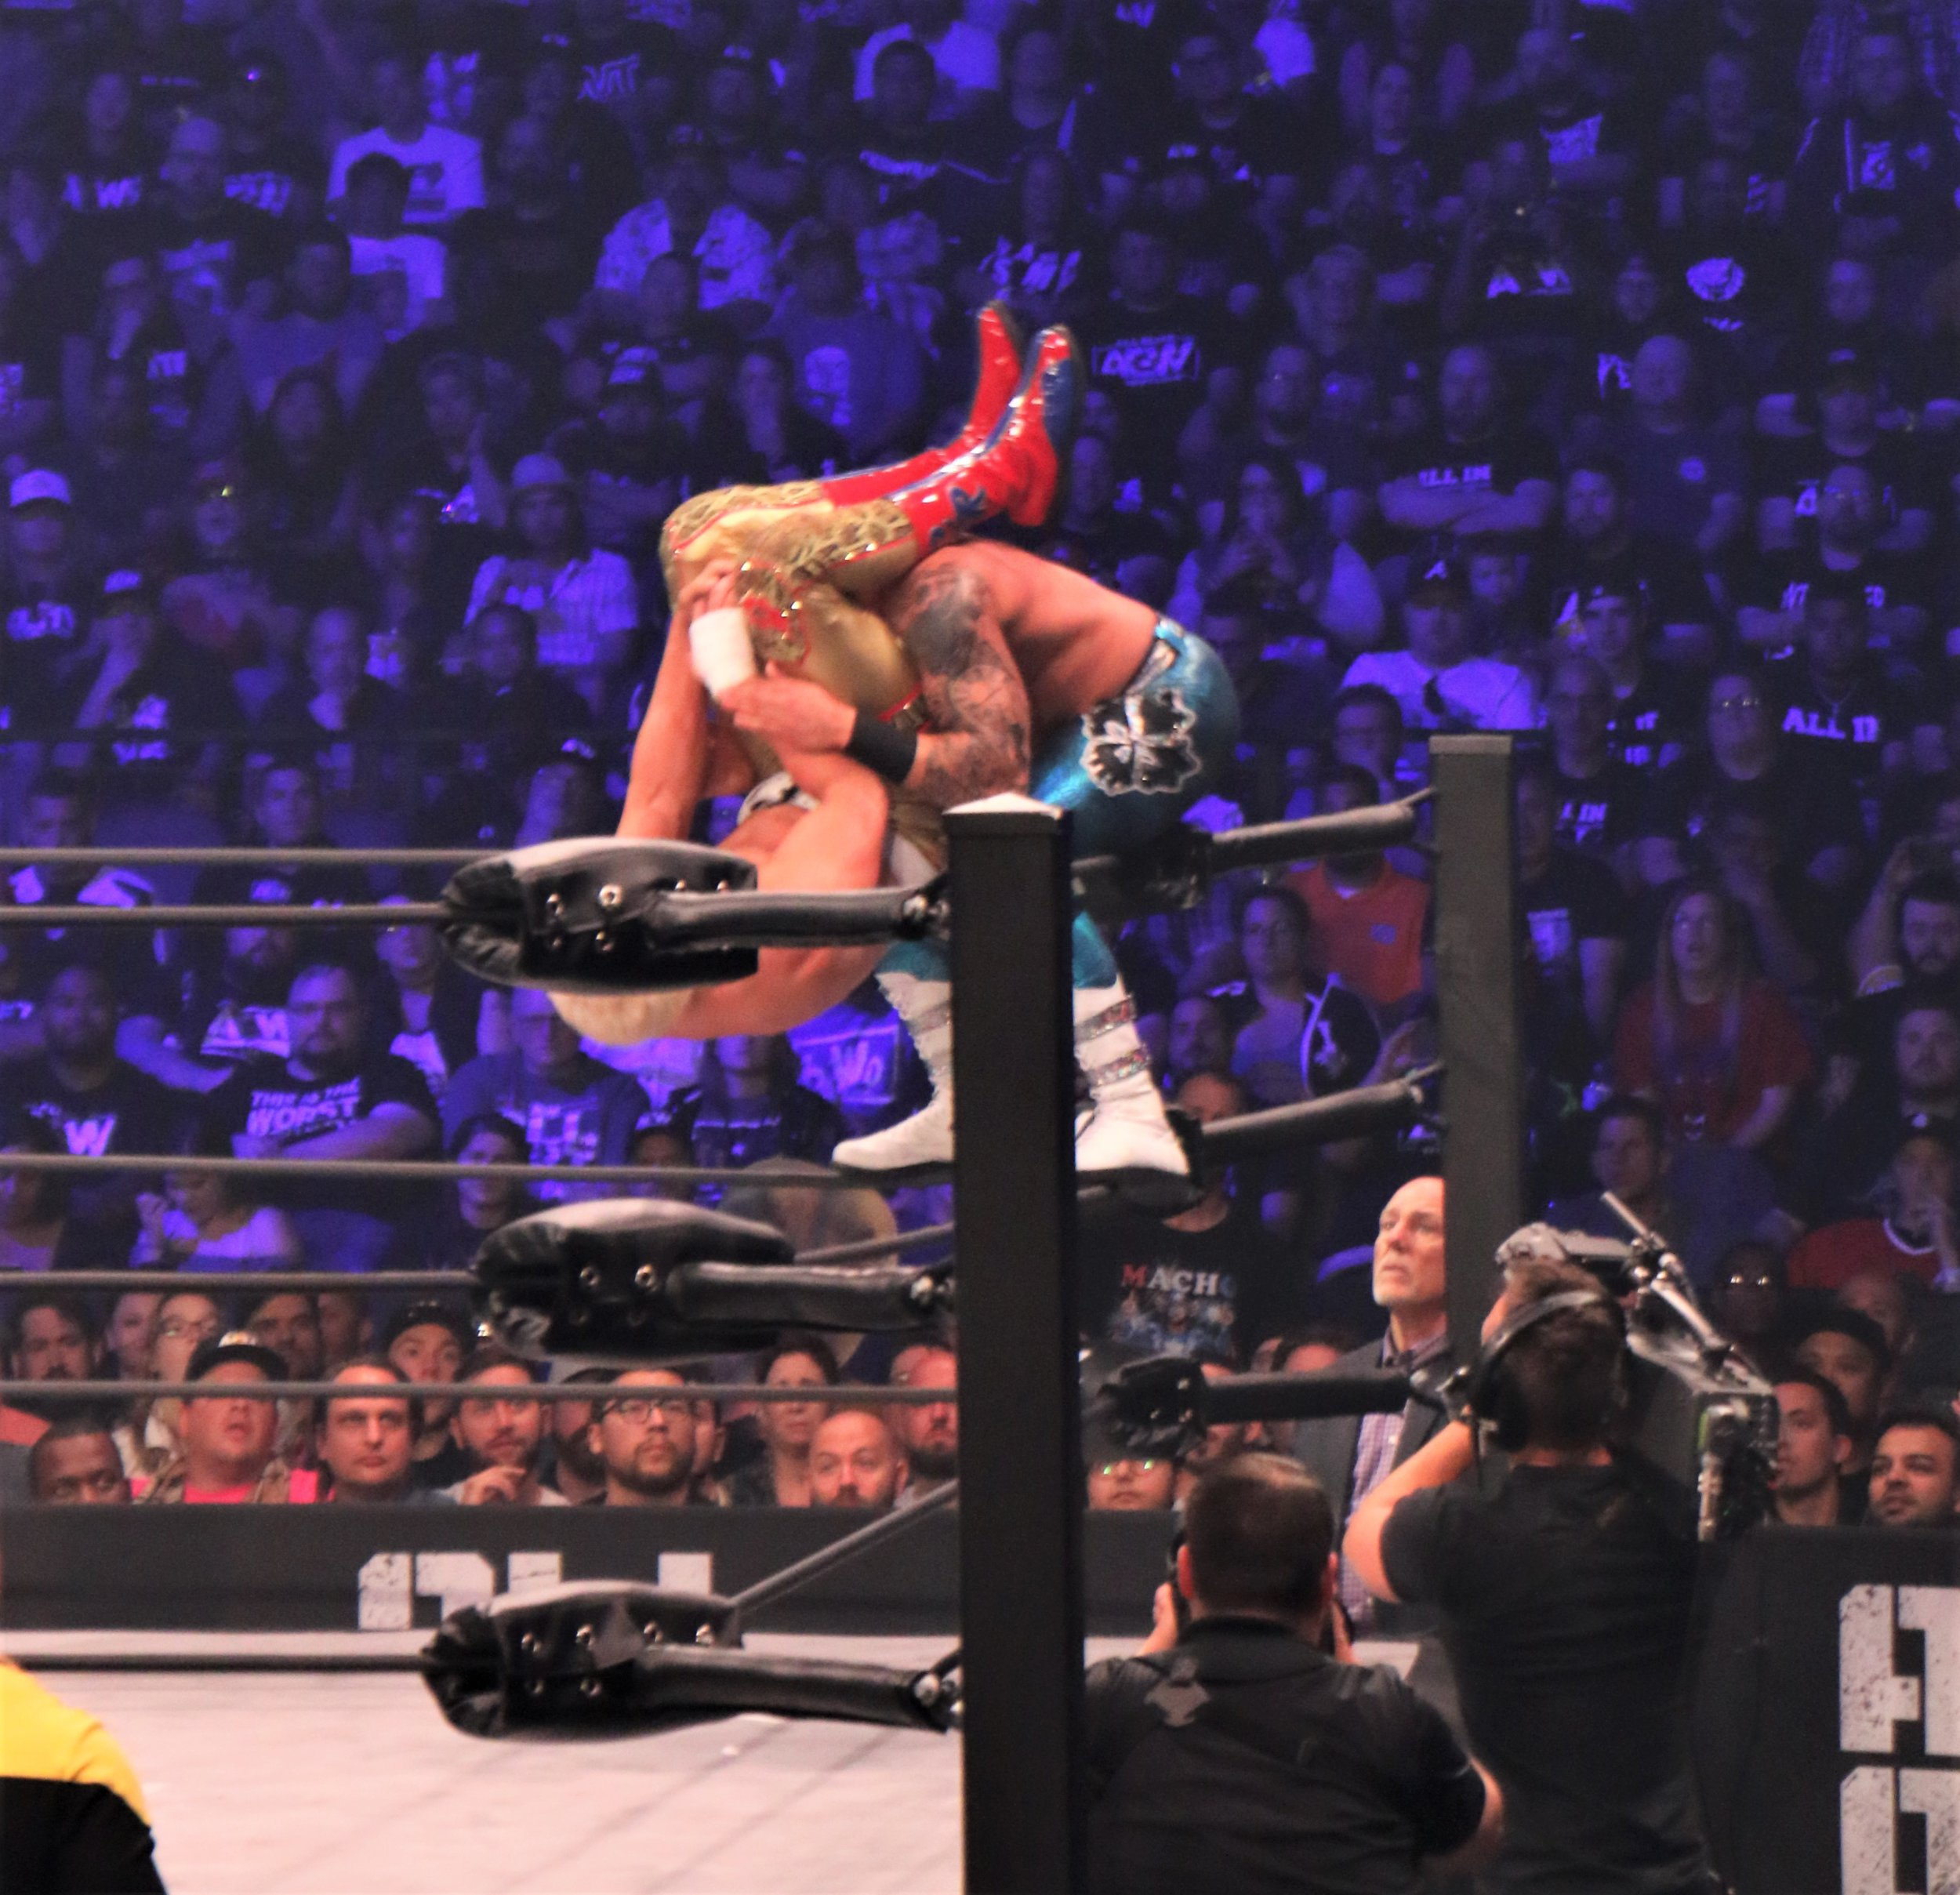 Cody goes for the hurricanrana on Shawn Spears.